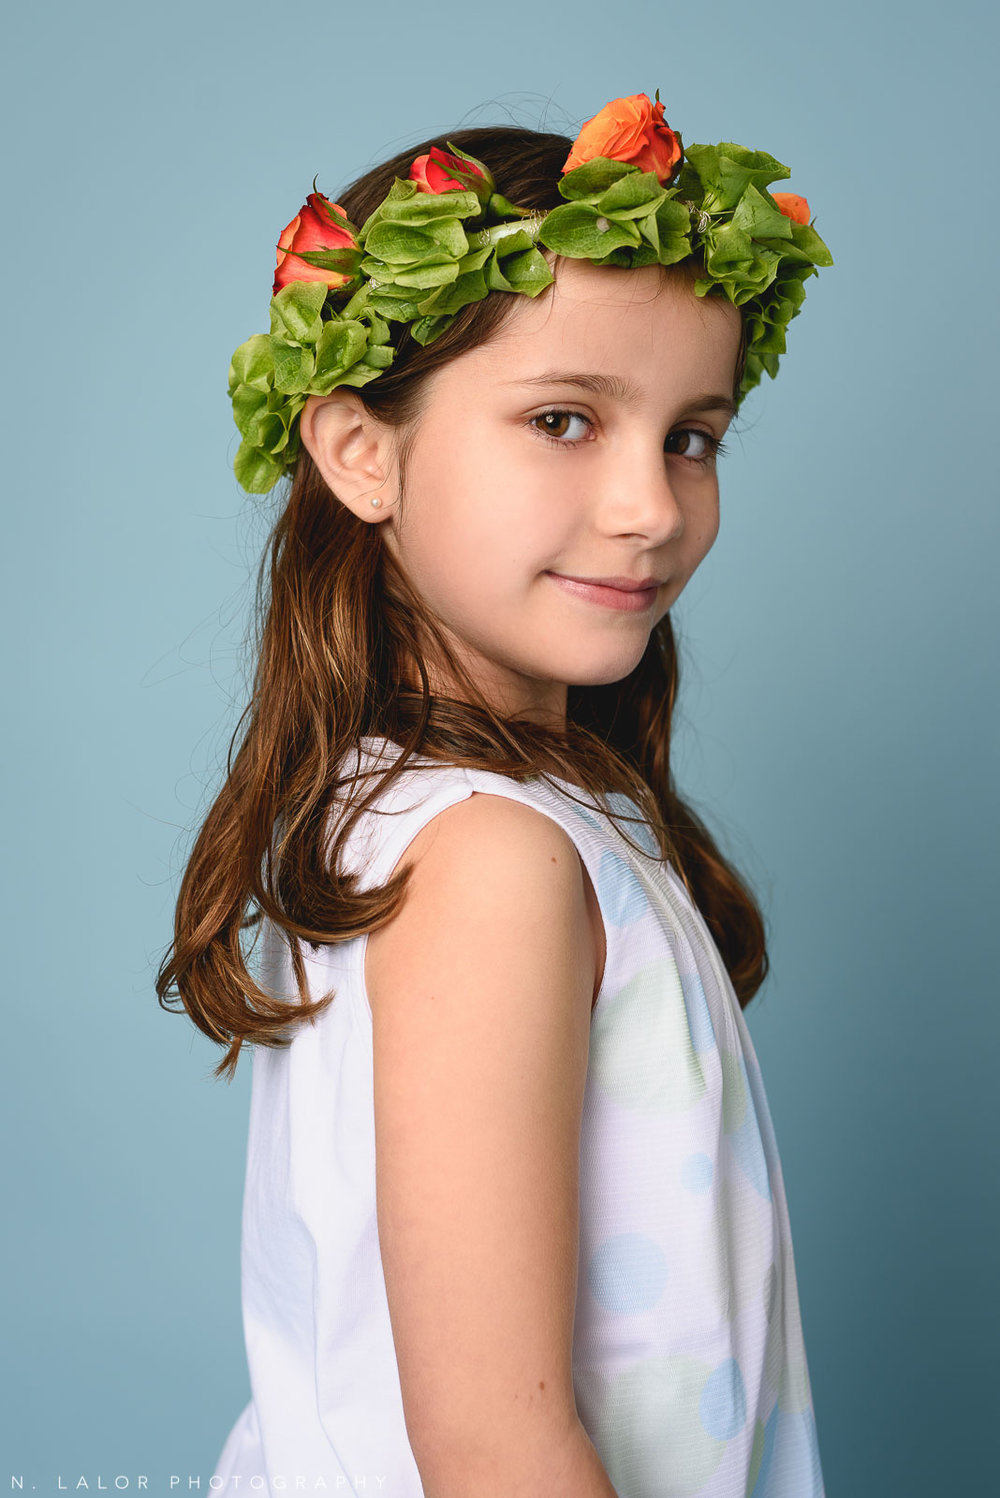 Flower crown. Kids fashion portrait by N. Lalor Photography. New Canaan, Connecticut.